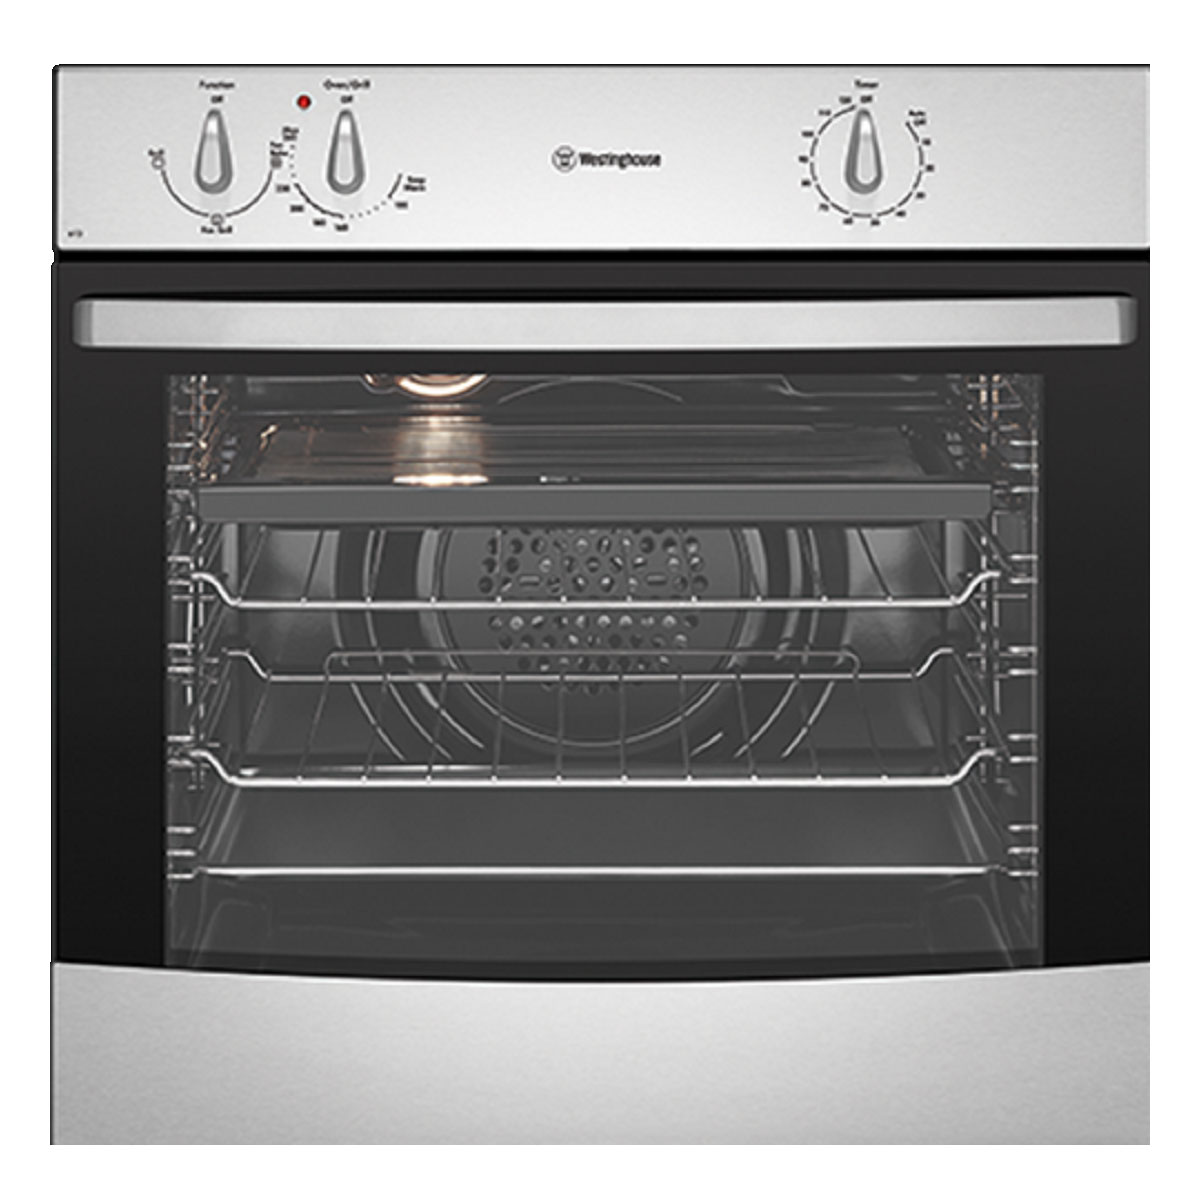 Westinghouse Electric Oven WVE613S